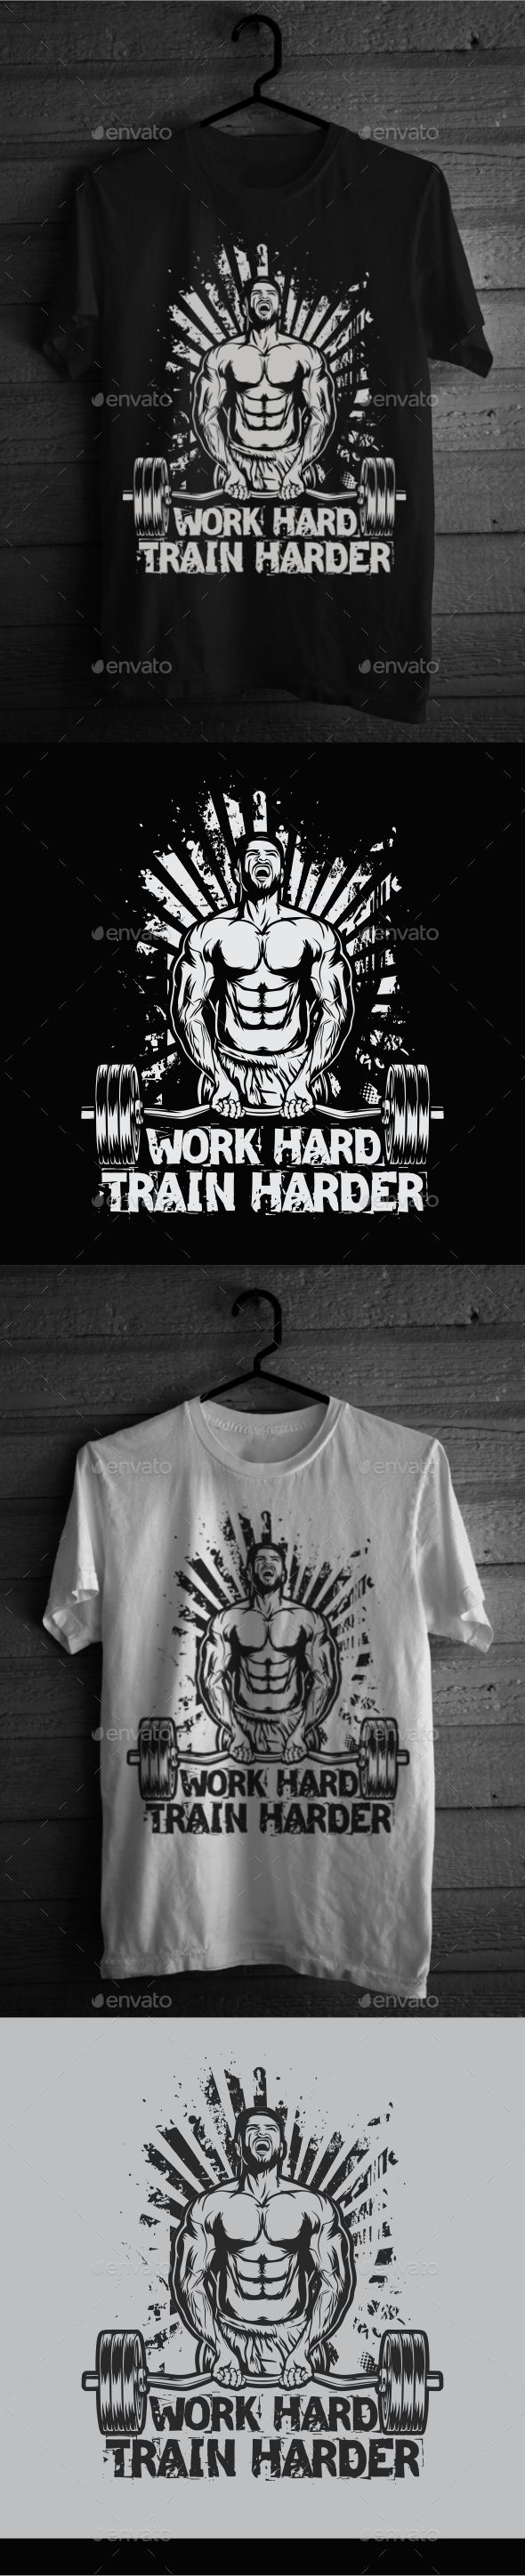 White t shirt eps - Fitness T Shirt Design5